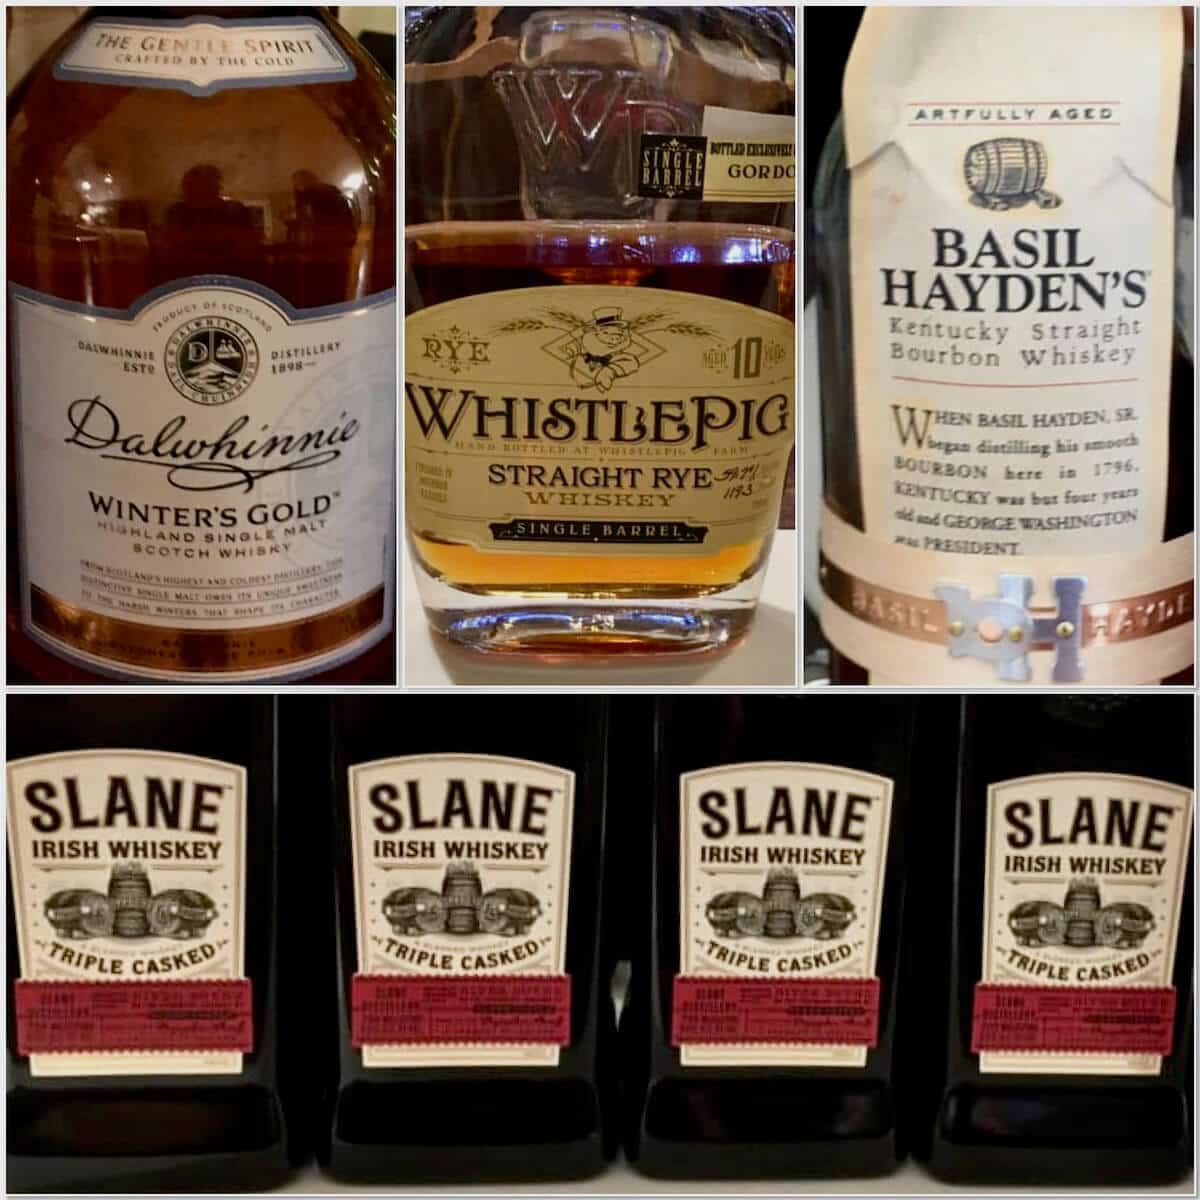 Collage of Dalwhinnie, Slane, Basil Haydens, and WhistlePig bottles.